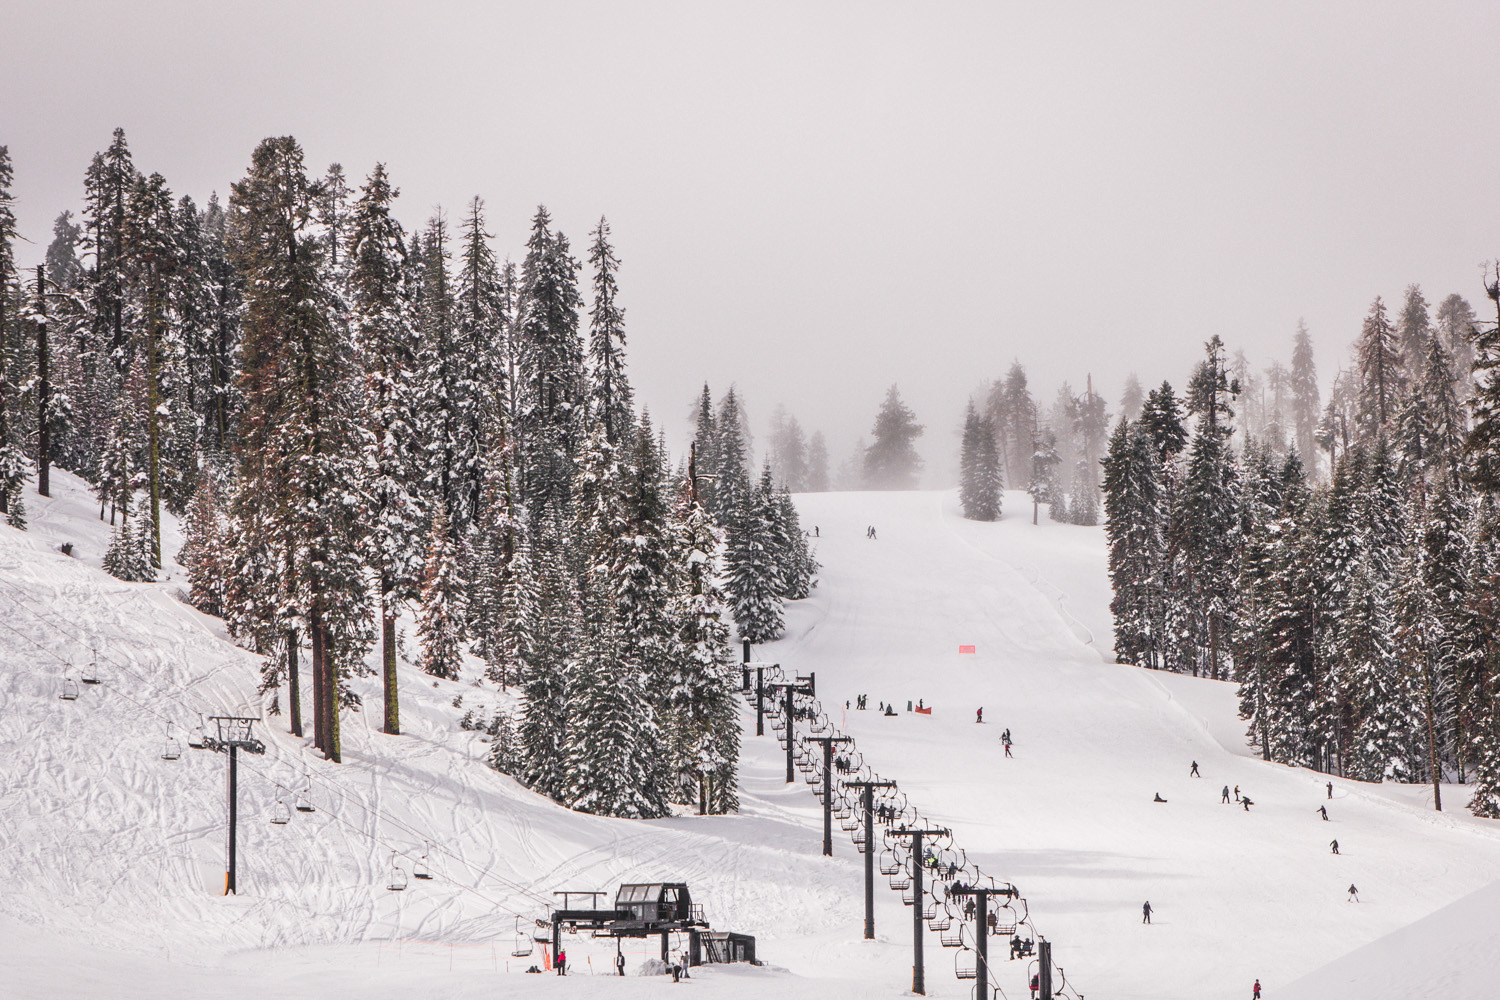 Badger Pass Ski Area in Yosemite, covered in snow, and full of skiers and snowboarders on the slopes and ski lift